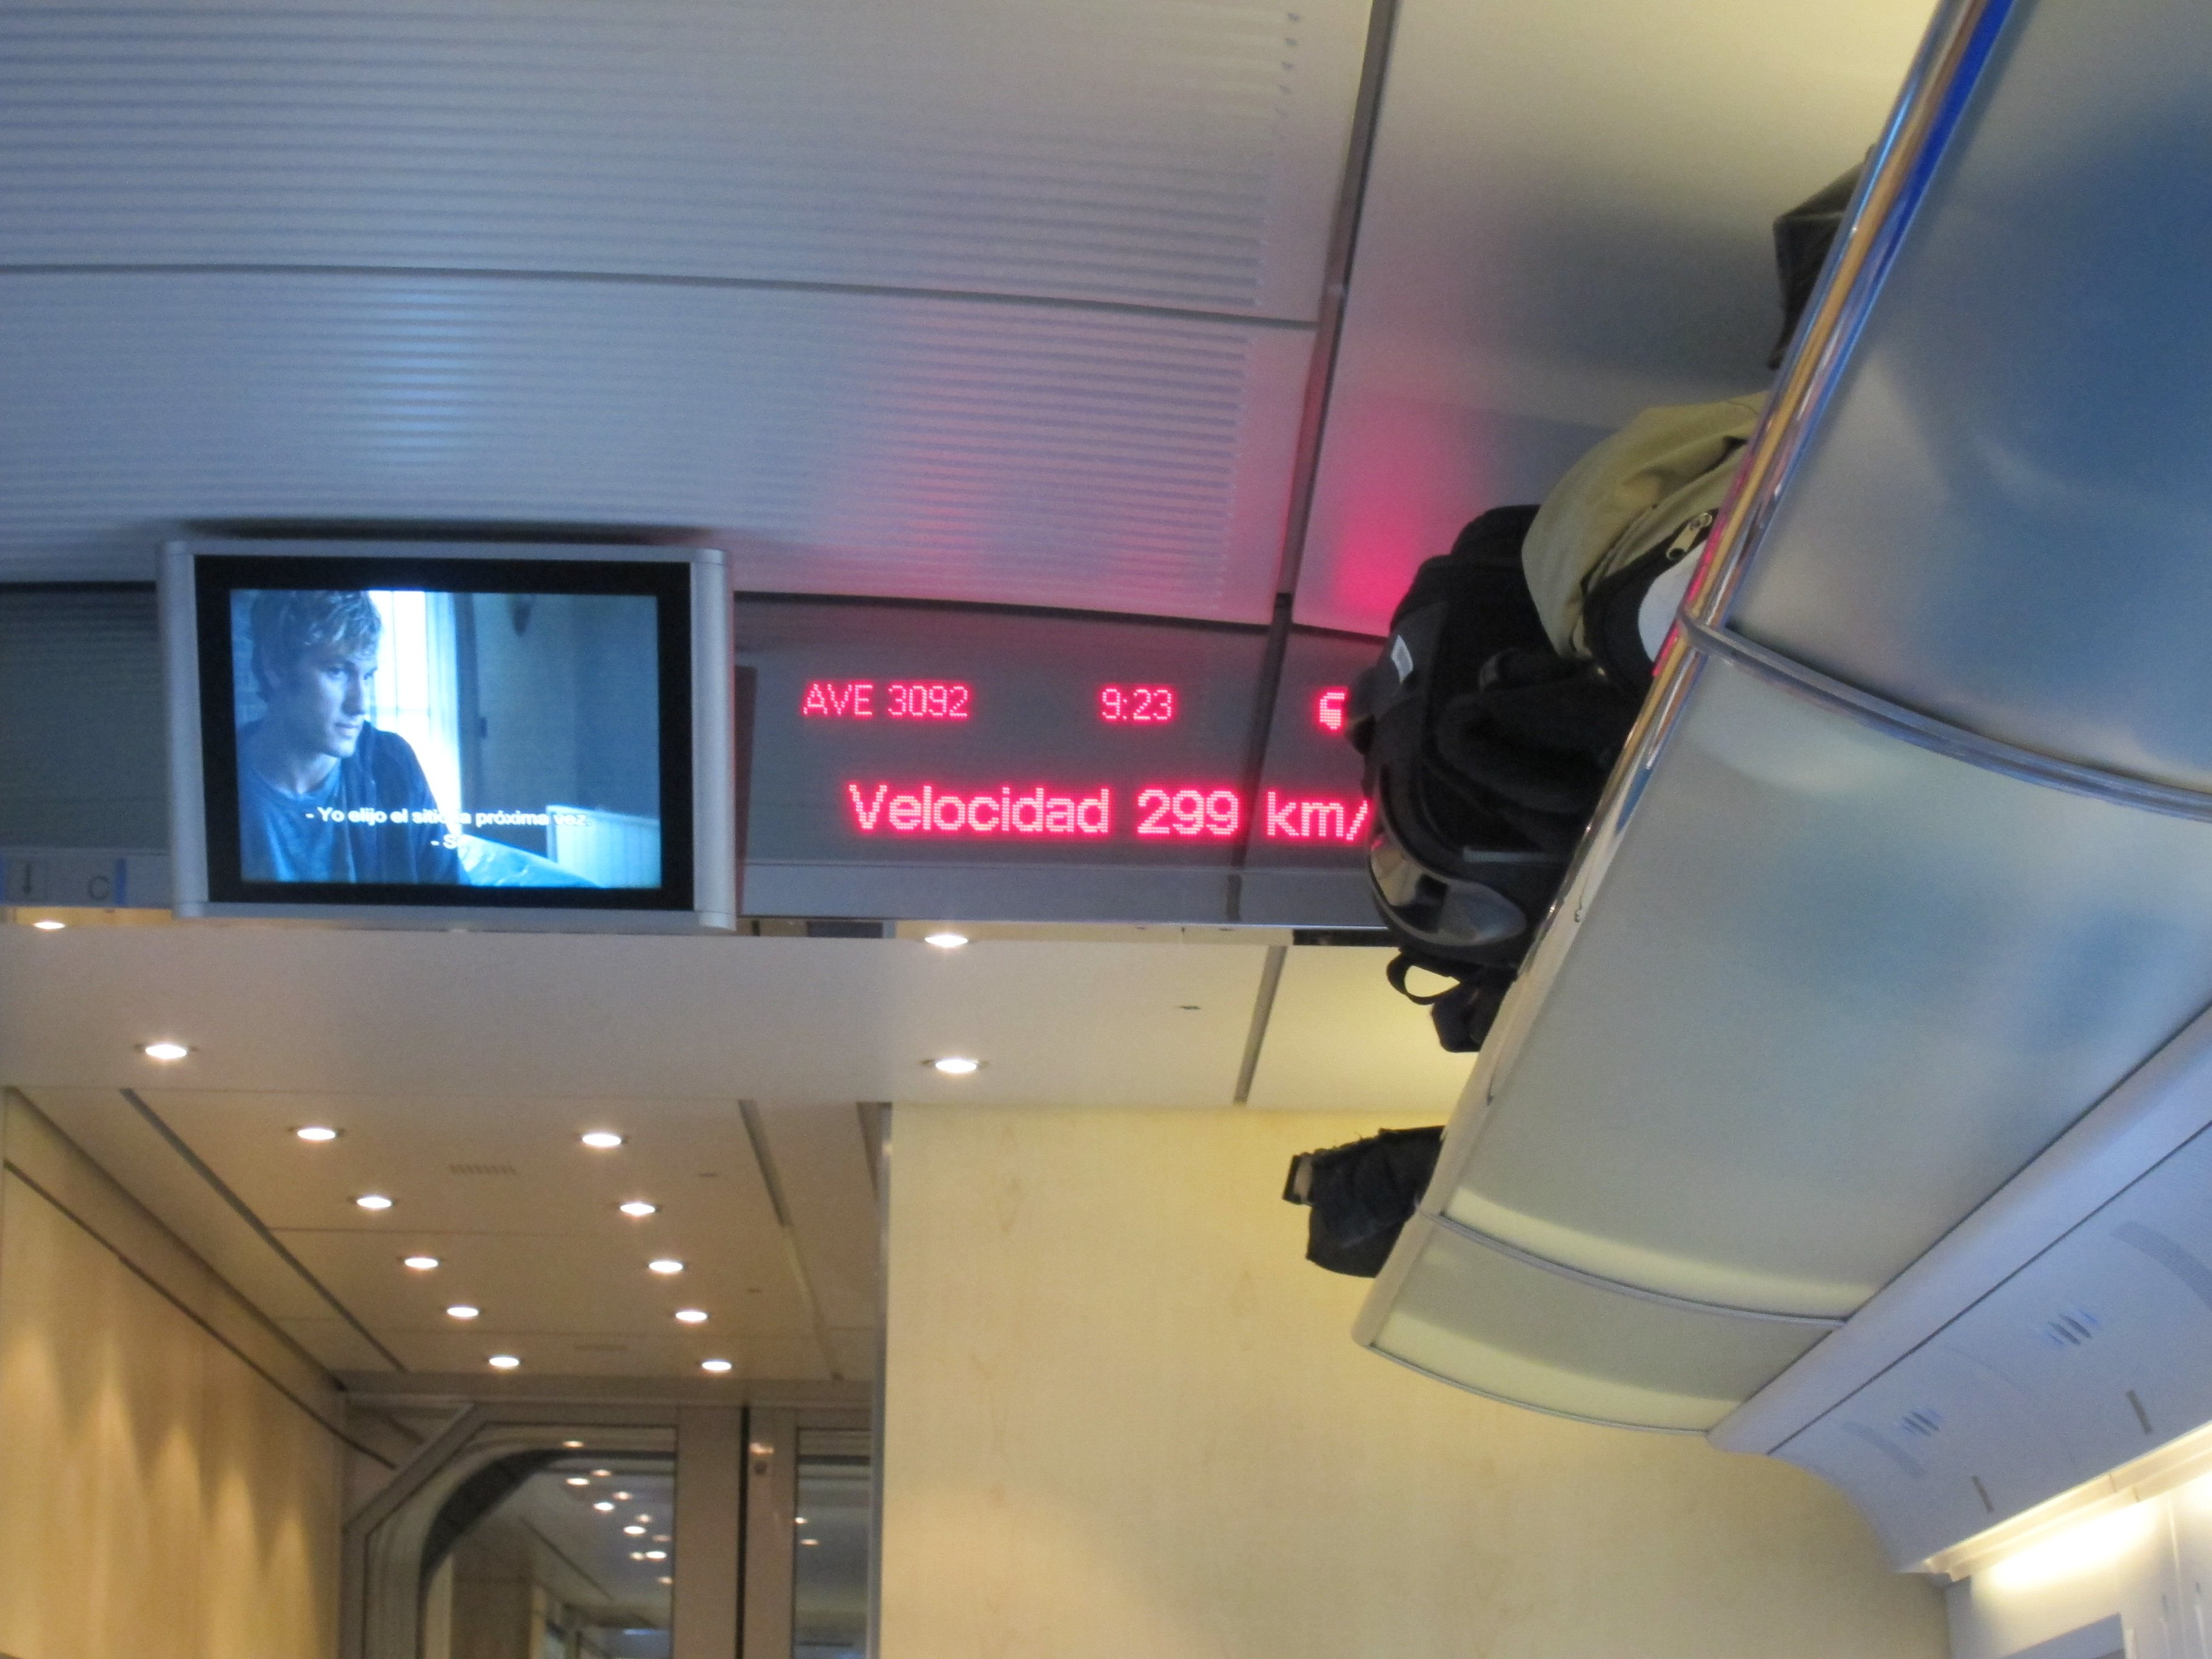 AVE – Renfe fast train